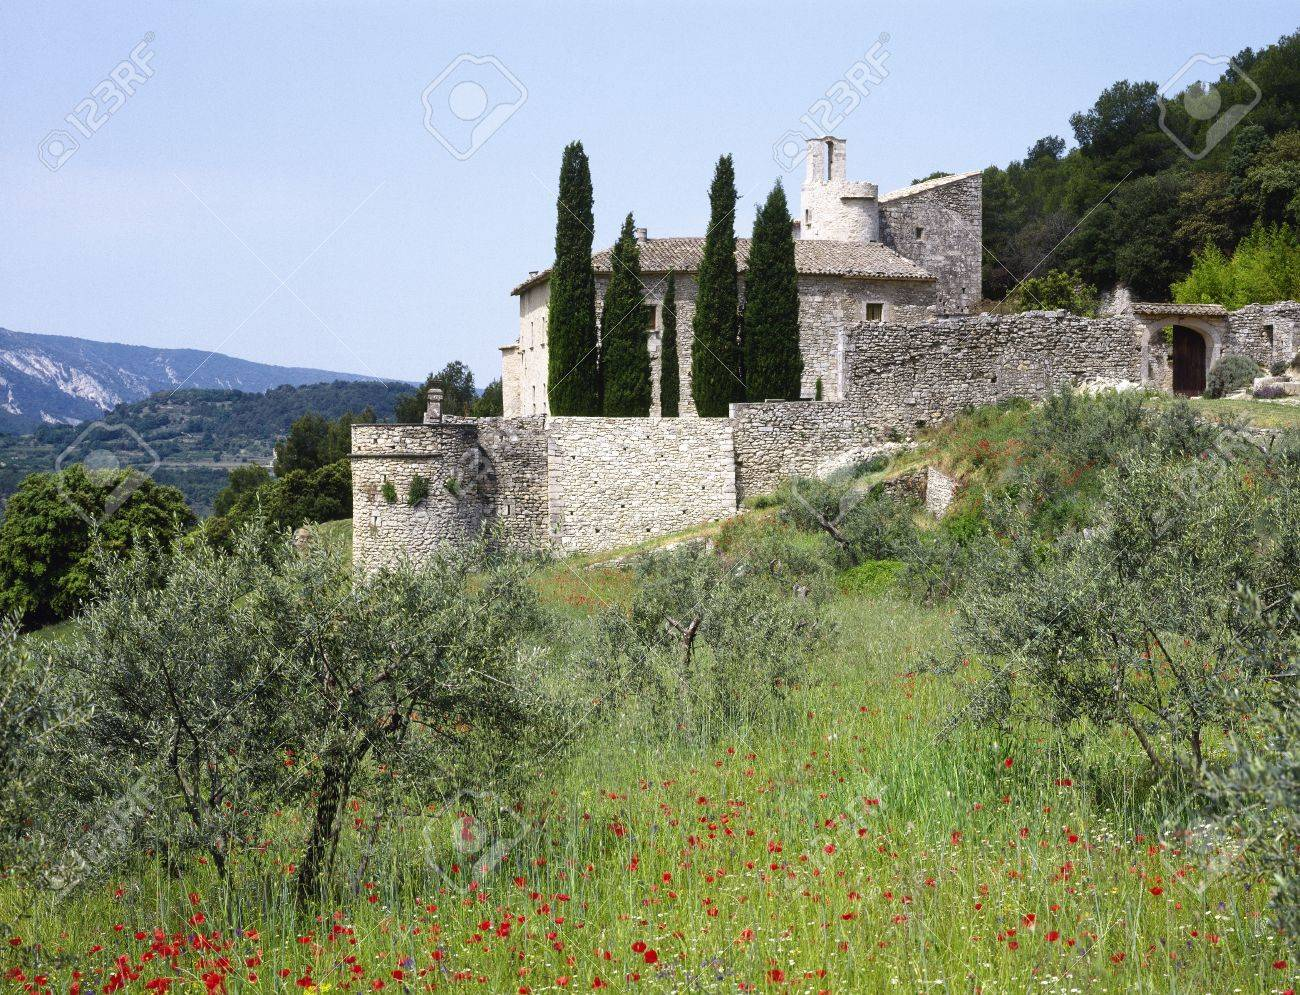 House in the Provence, southern France Standard-Bild - 12506748